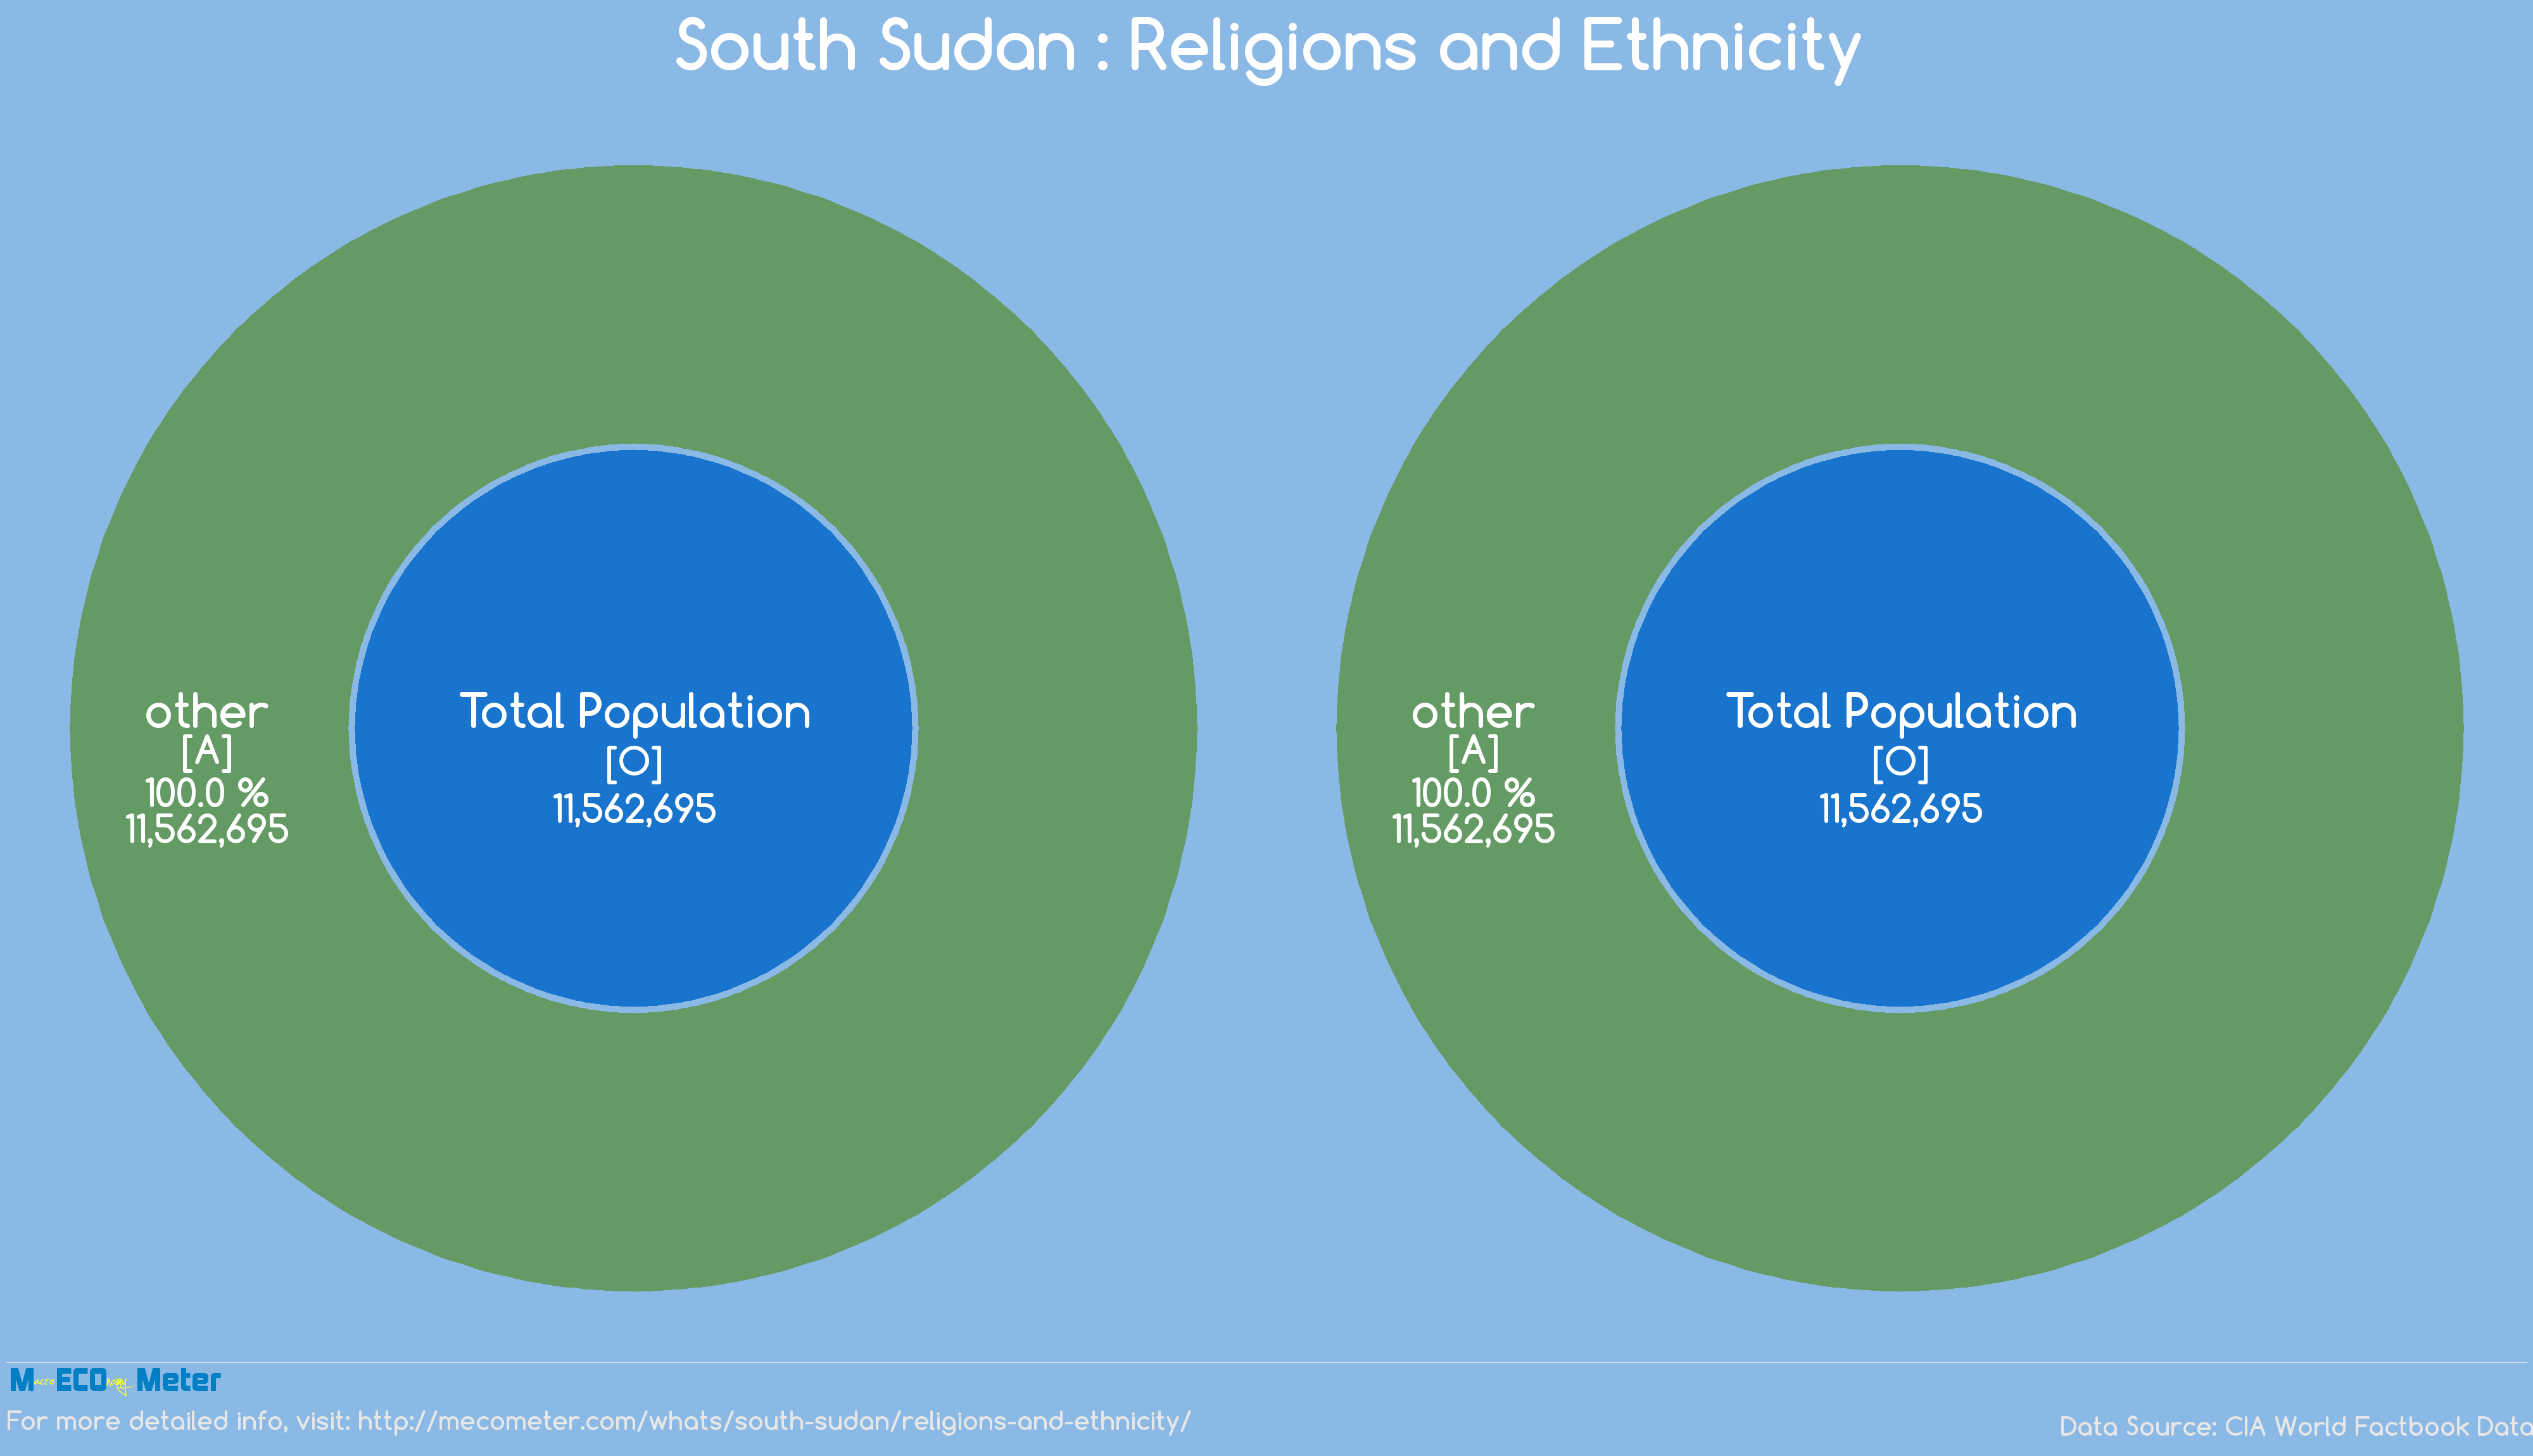 South Sudan : Religions and Ethnicity